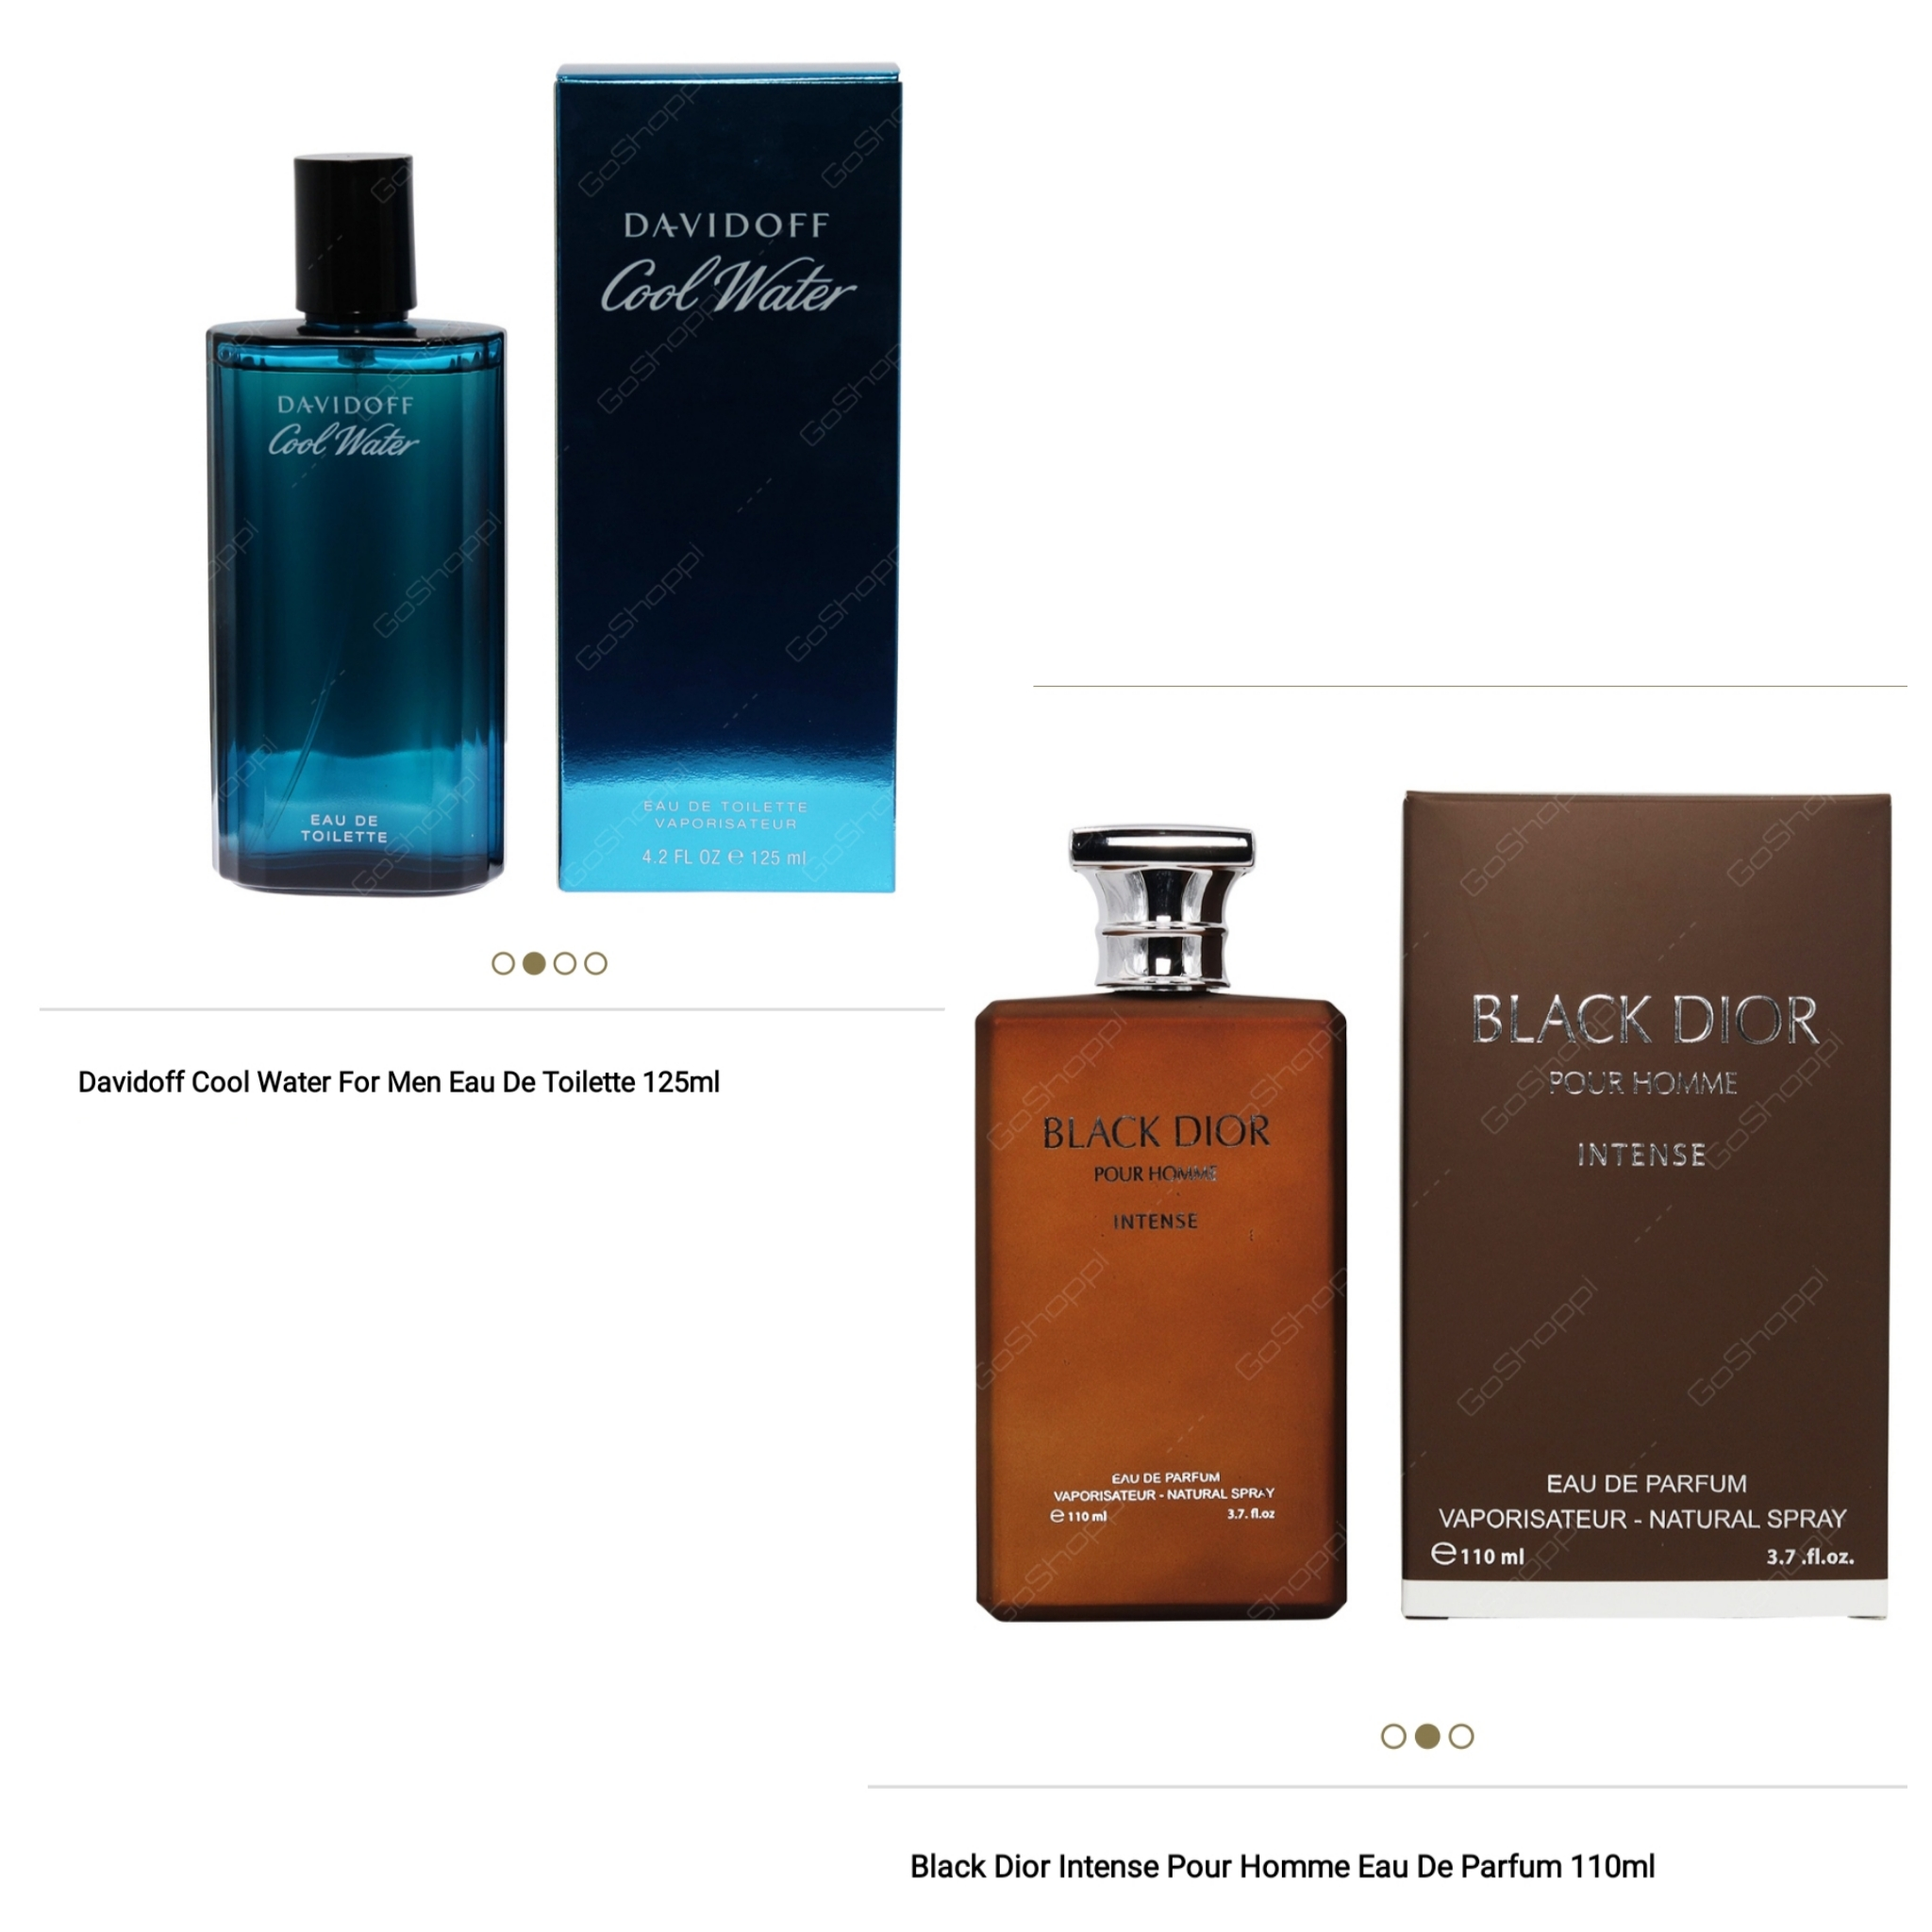 Black Dior Intense 100ml and Davidoff Cool Water Men 125ml Offer